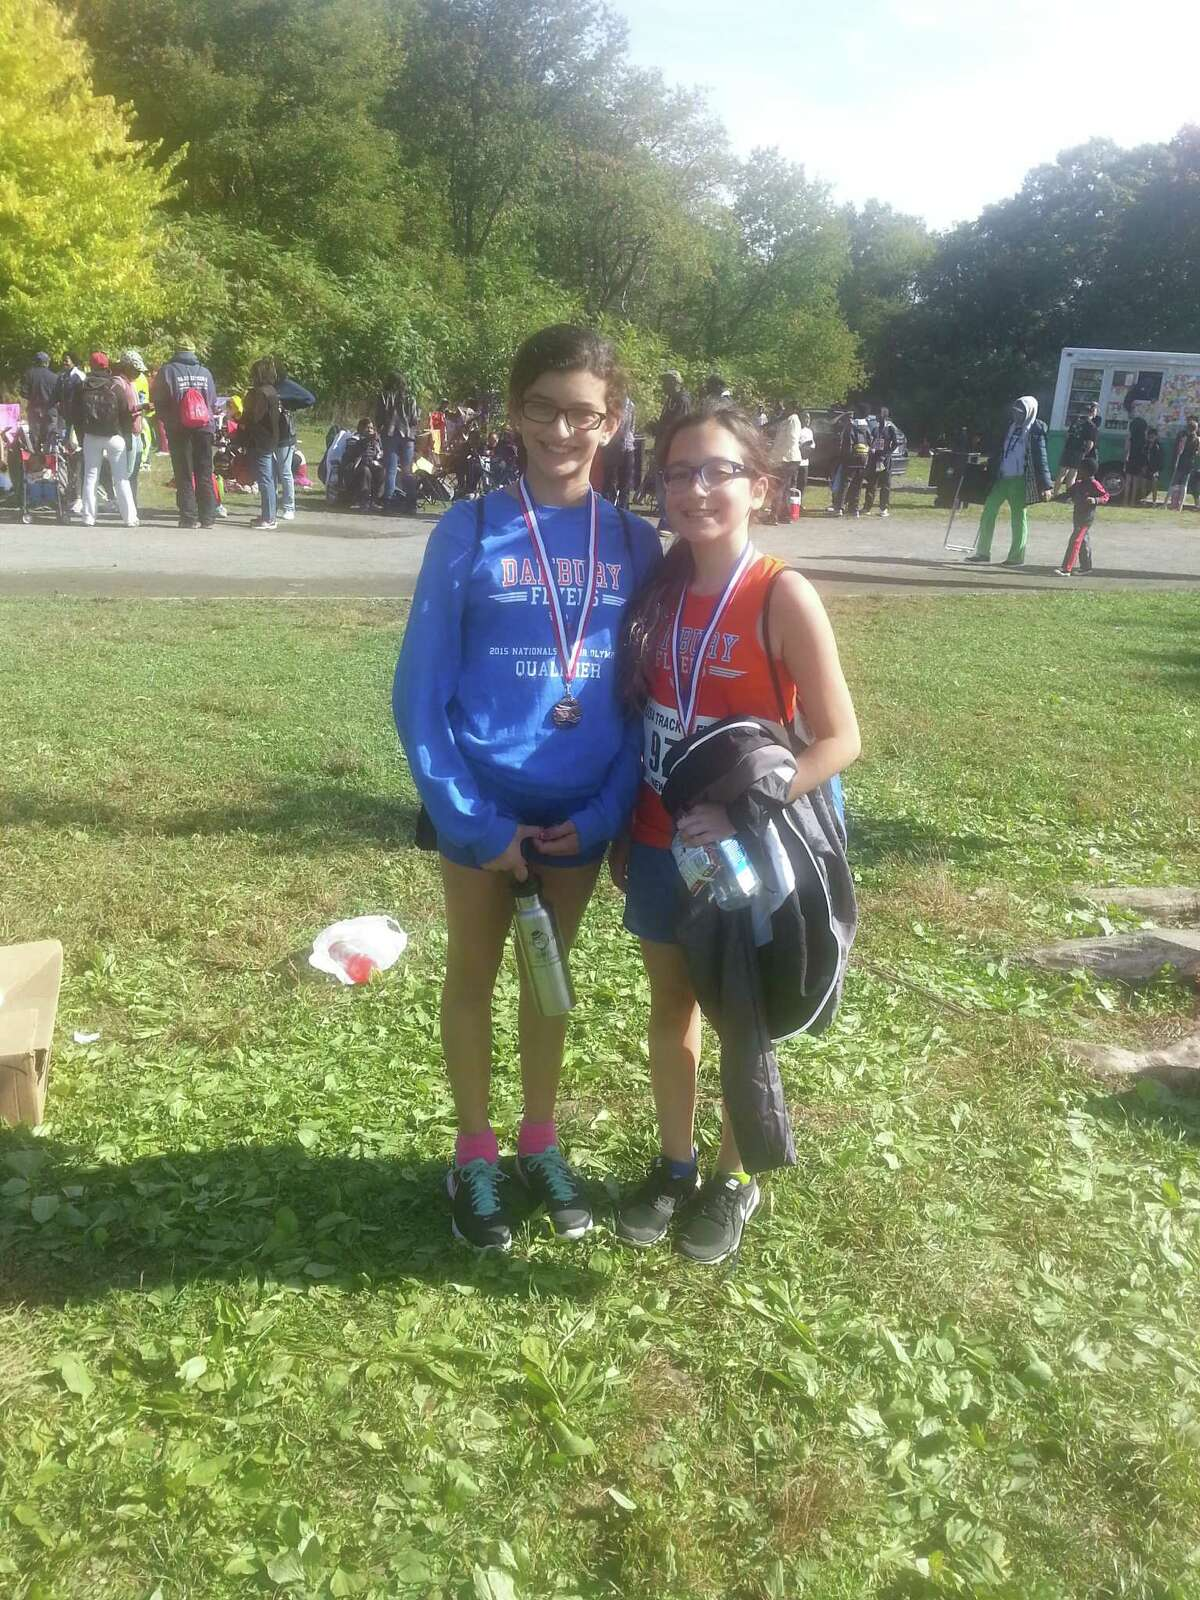 Danbury Flyers medalists Gabriella Teixeira (left) and Valerie Fox at their race on Oct. 11, 2015.